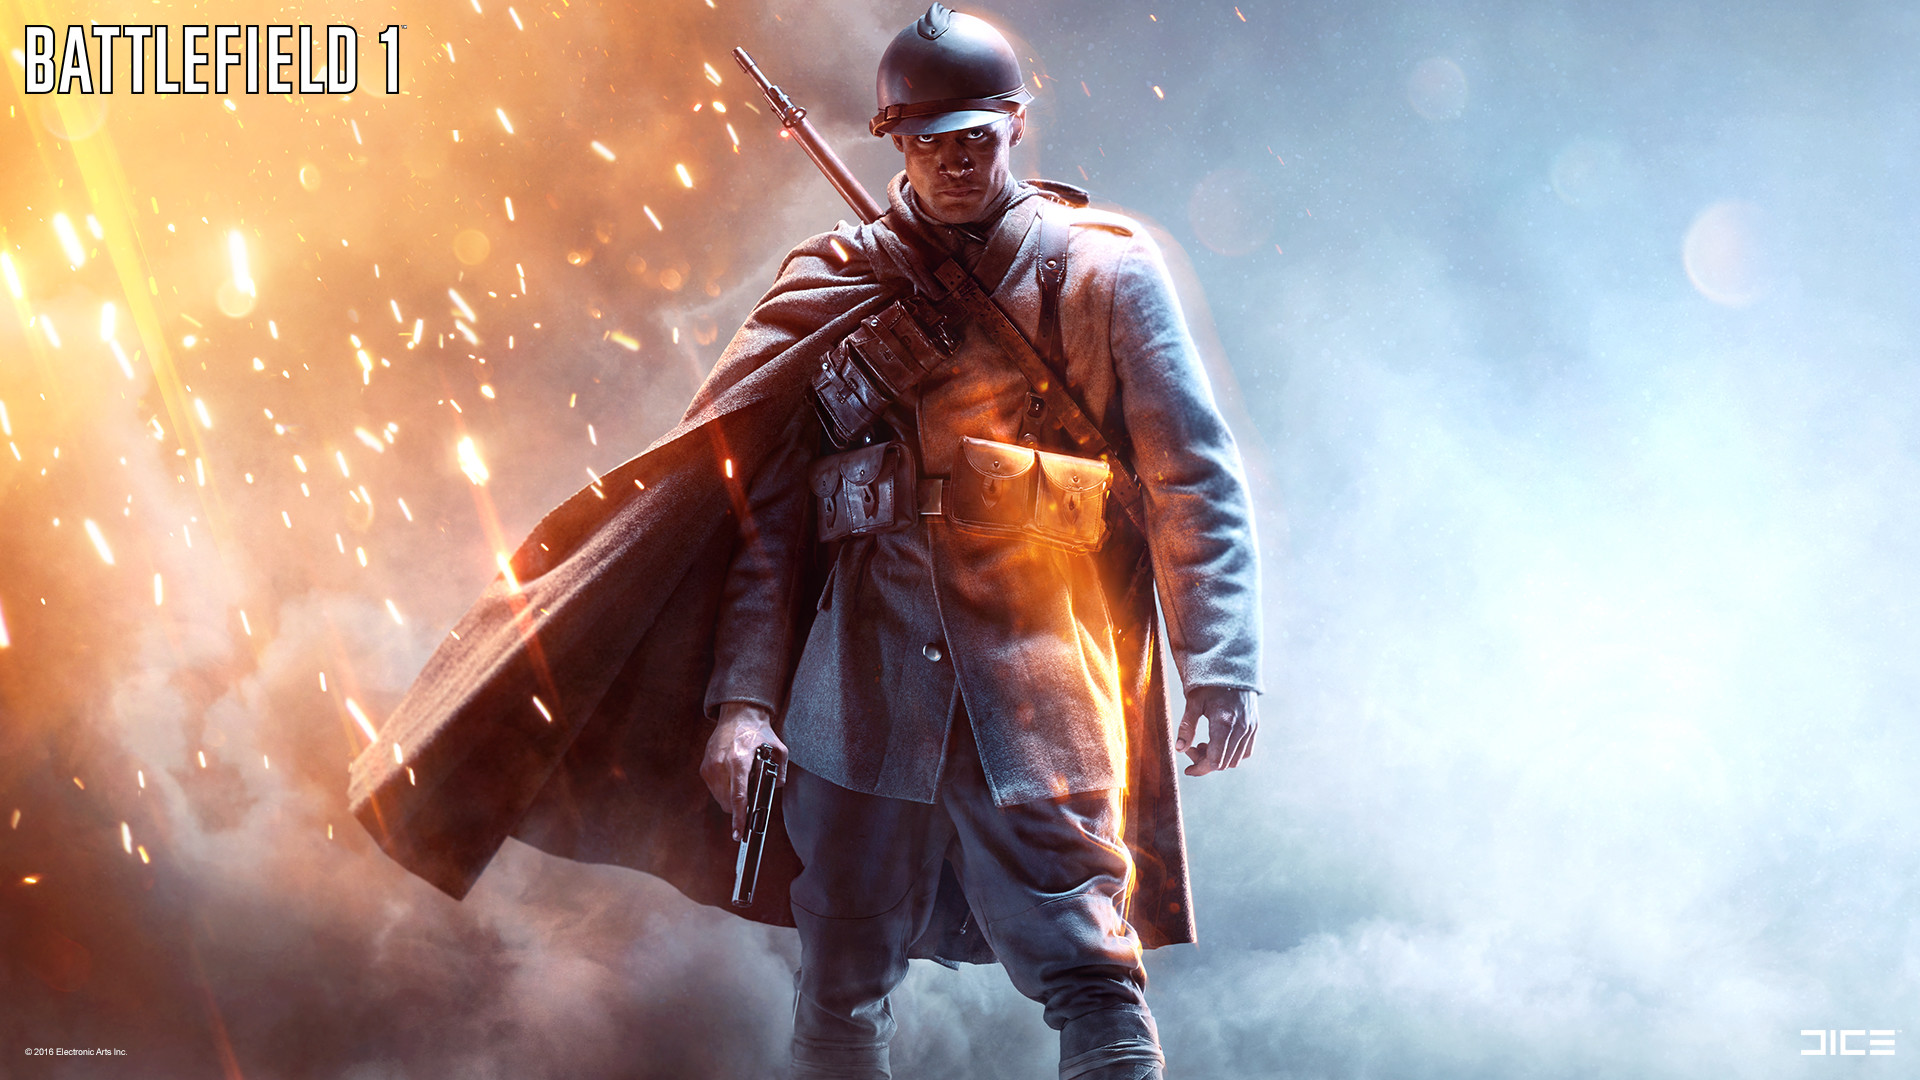 Battlefield 1 Will Get Another Lmg When In The Name Of The Tsar